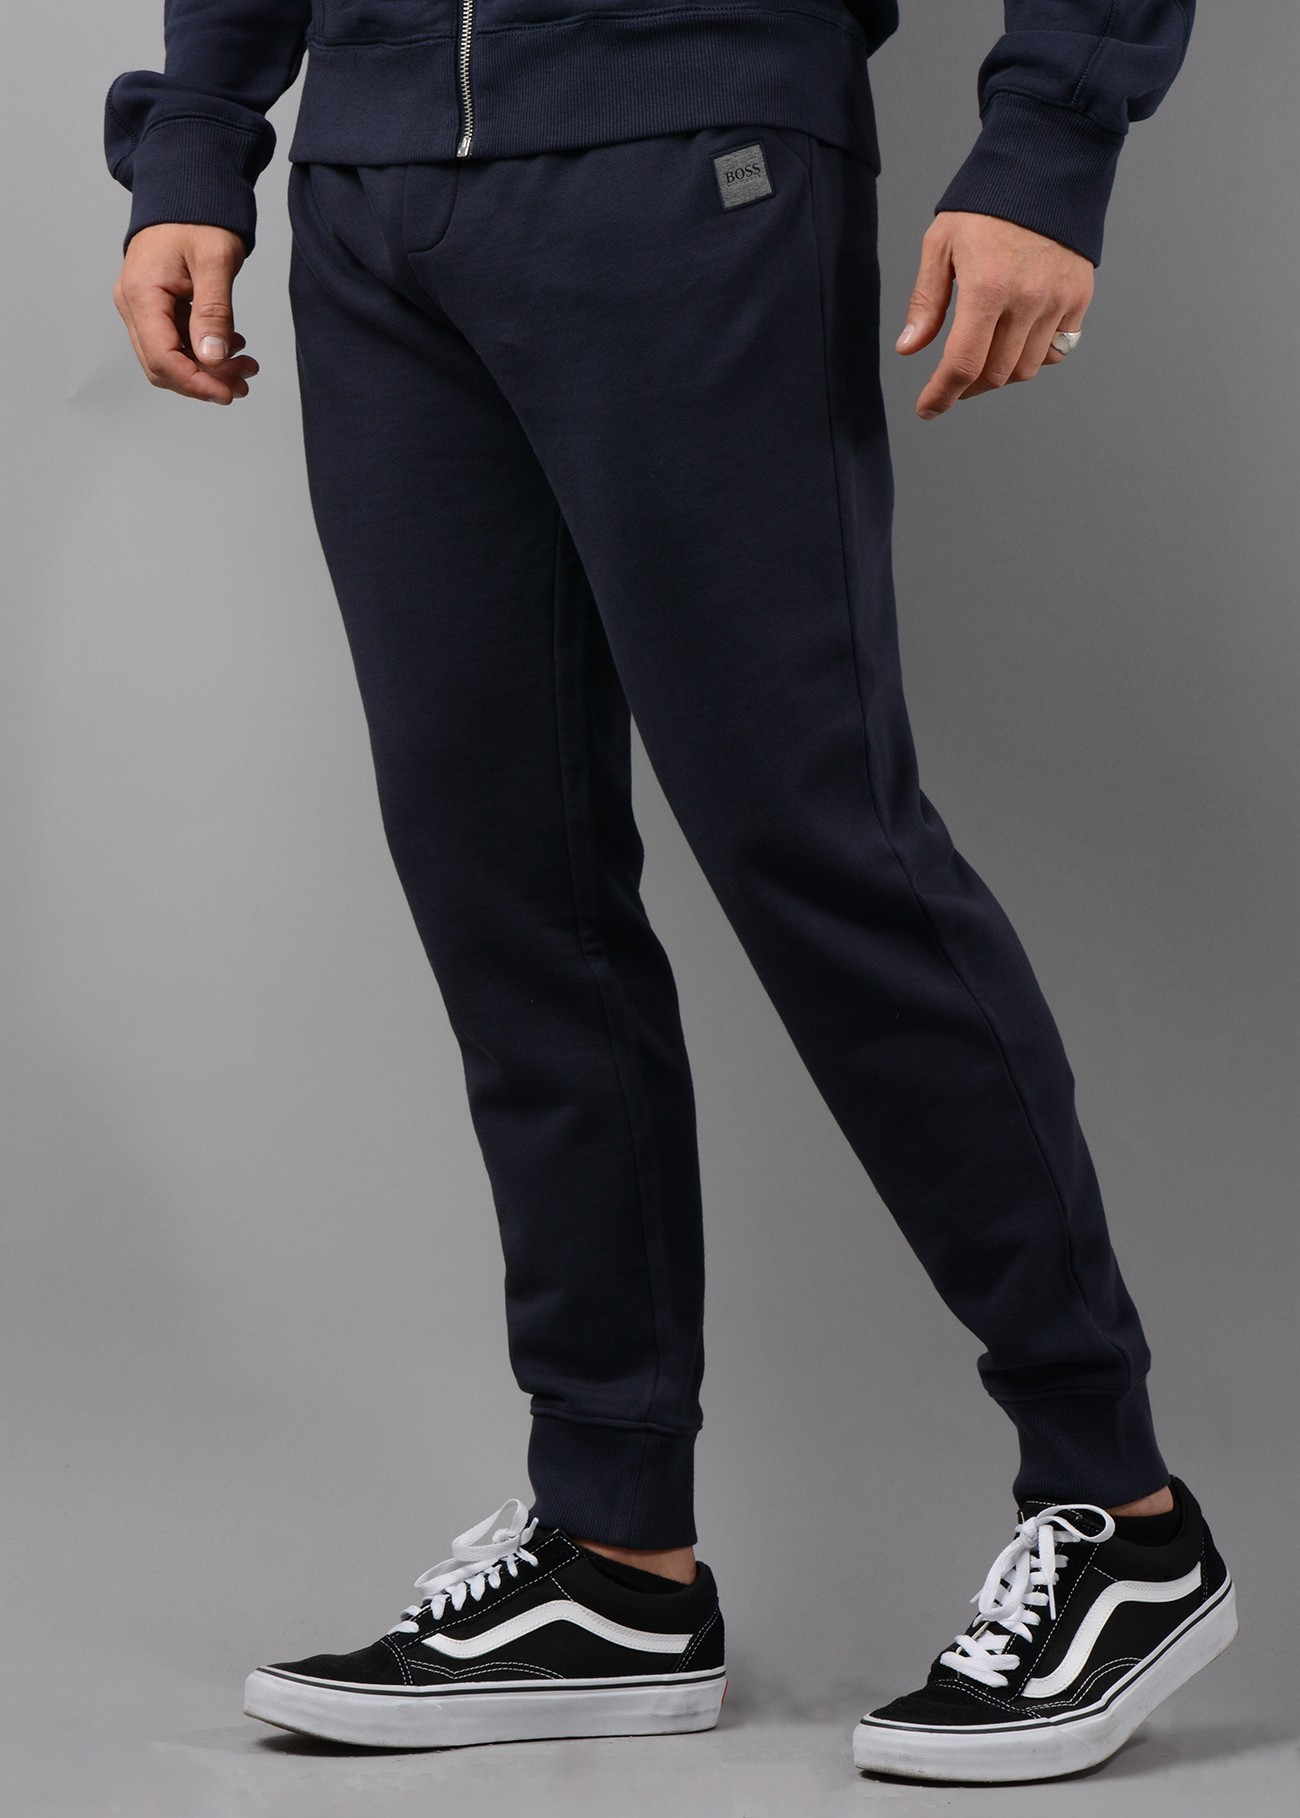 1b3b9c4fd Hugo Boss South Jogger Bottoms in Navy - My Outfit